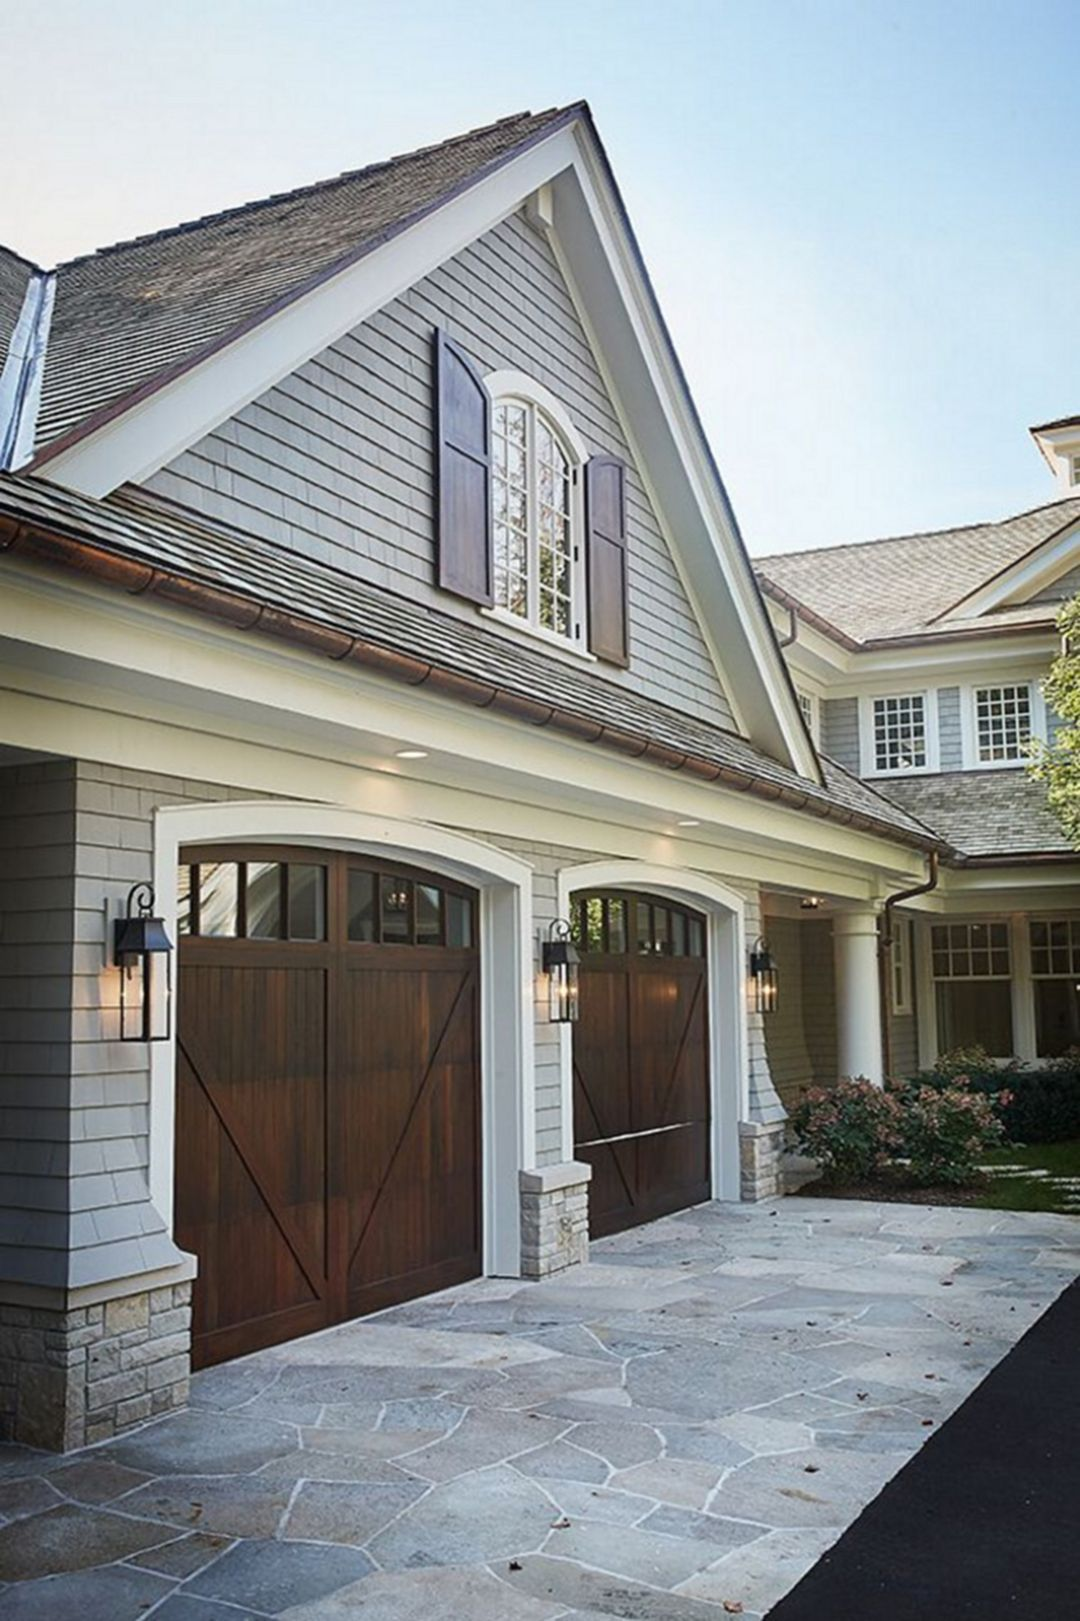 15 Most Unique Home Exterior with Stone Ideas For Amazing ... on Garage Door Colors Ideas  id=87643